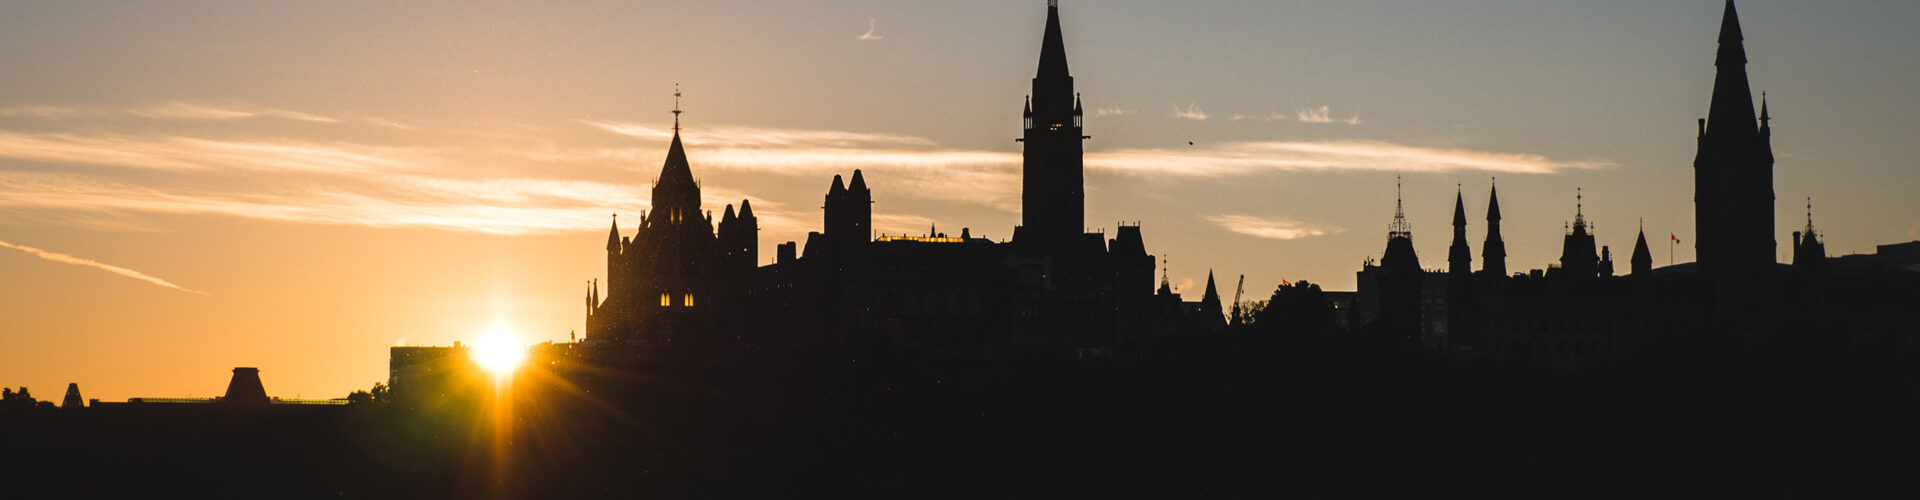 Silhouette of parliament buildings